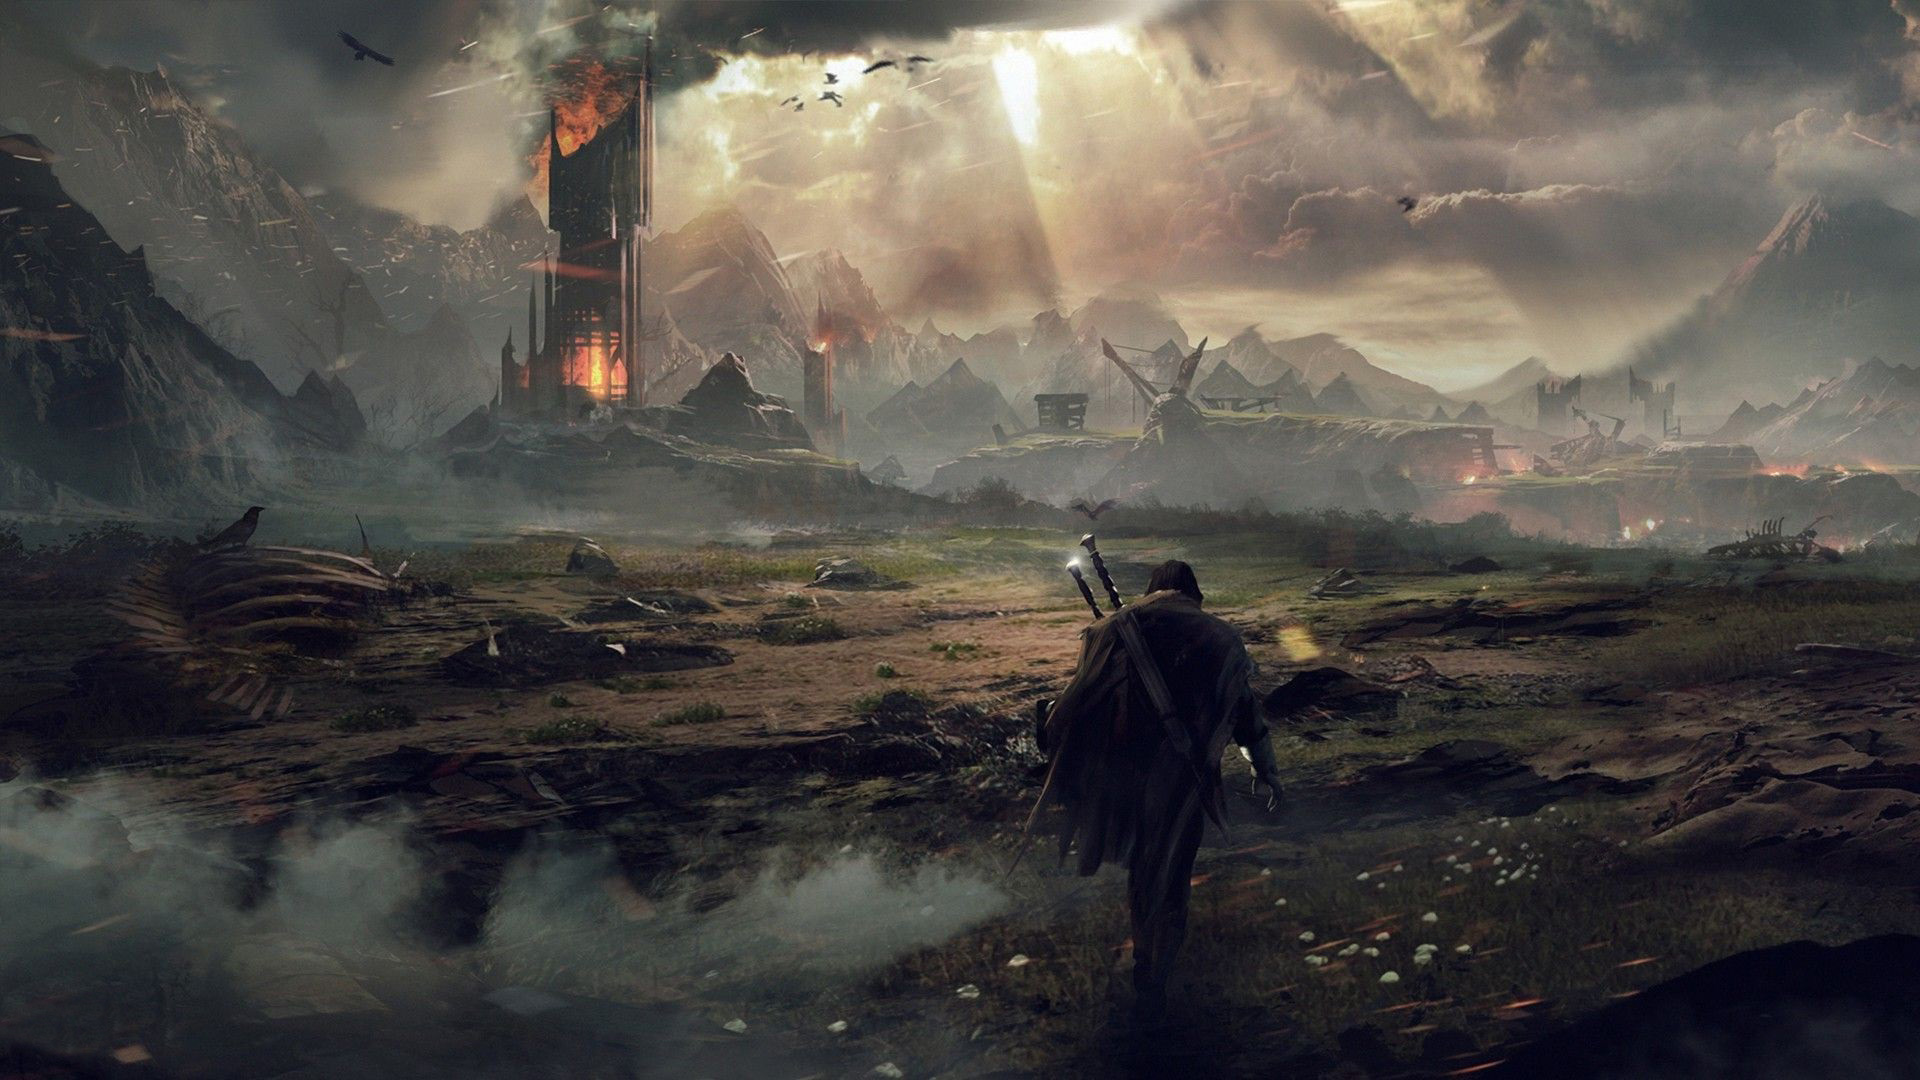 middle-earth: shadow of mordor – ps wallpapers